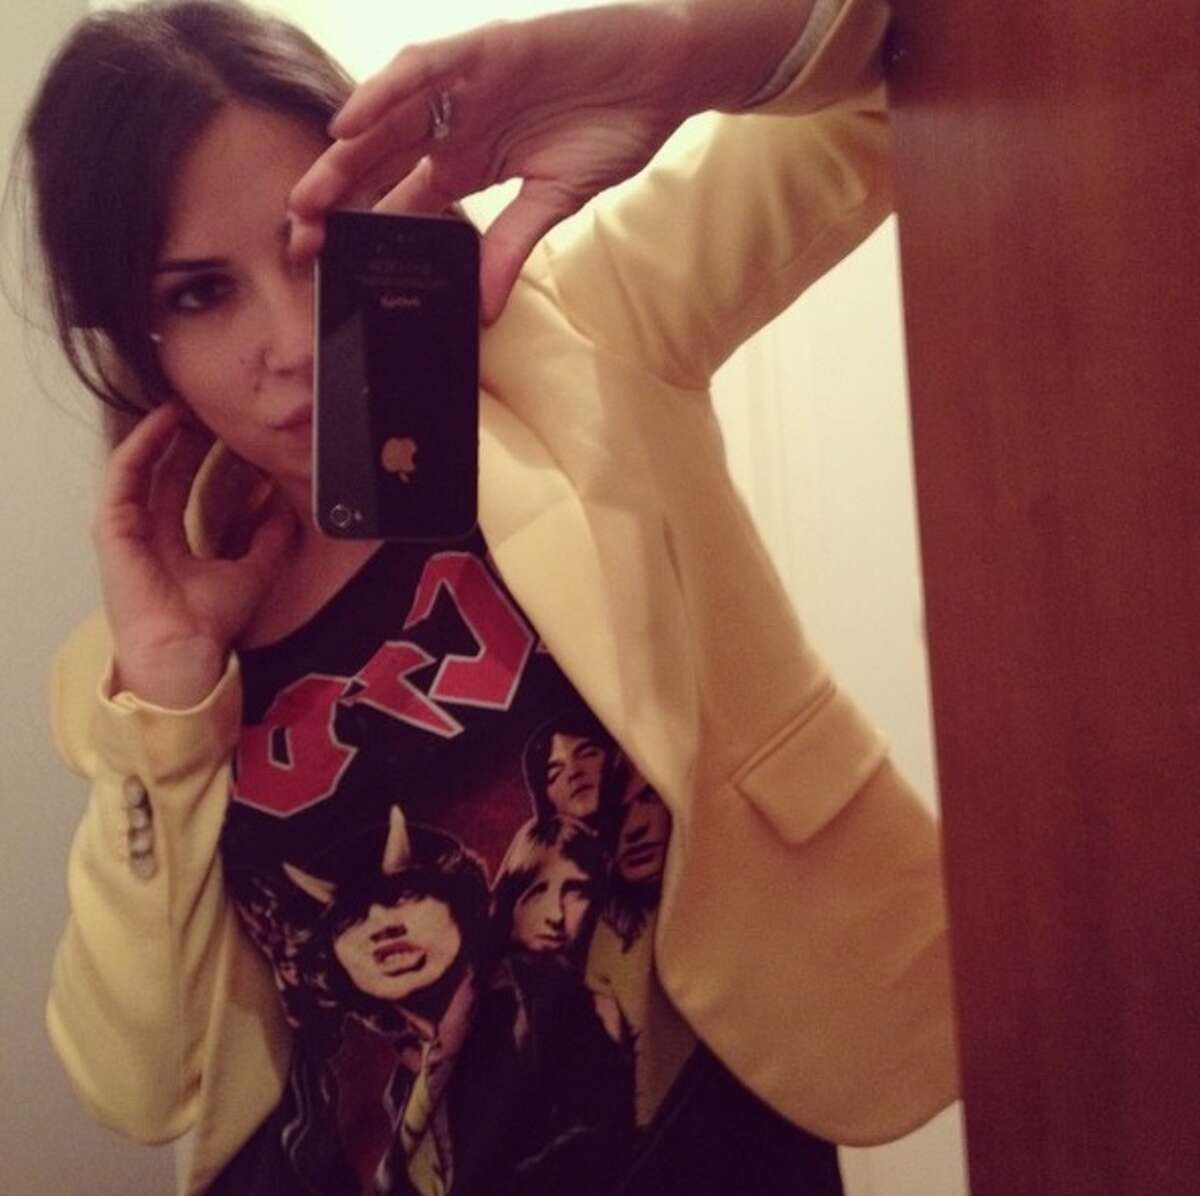 1. She's a little bit rock and rol lMrs. Marjanovic frequently posts photos of herself wearing Iron Maiden, Metallica and ACDC gear.